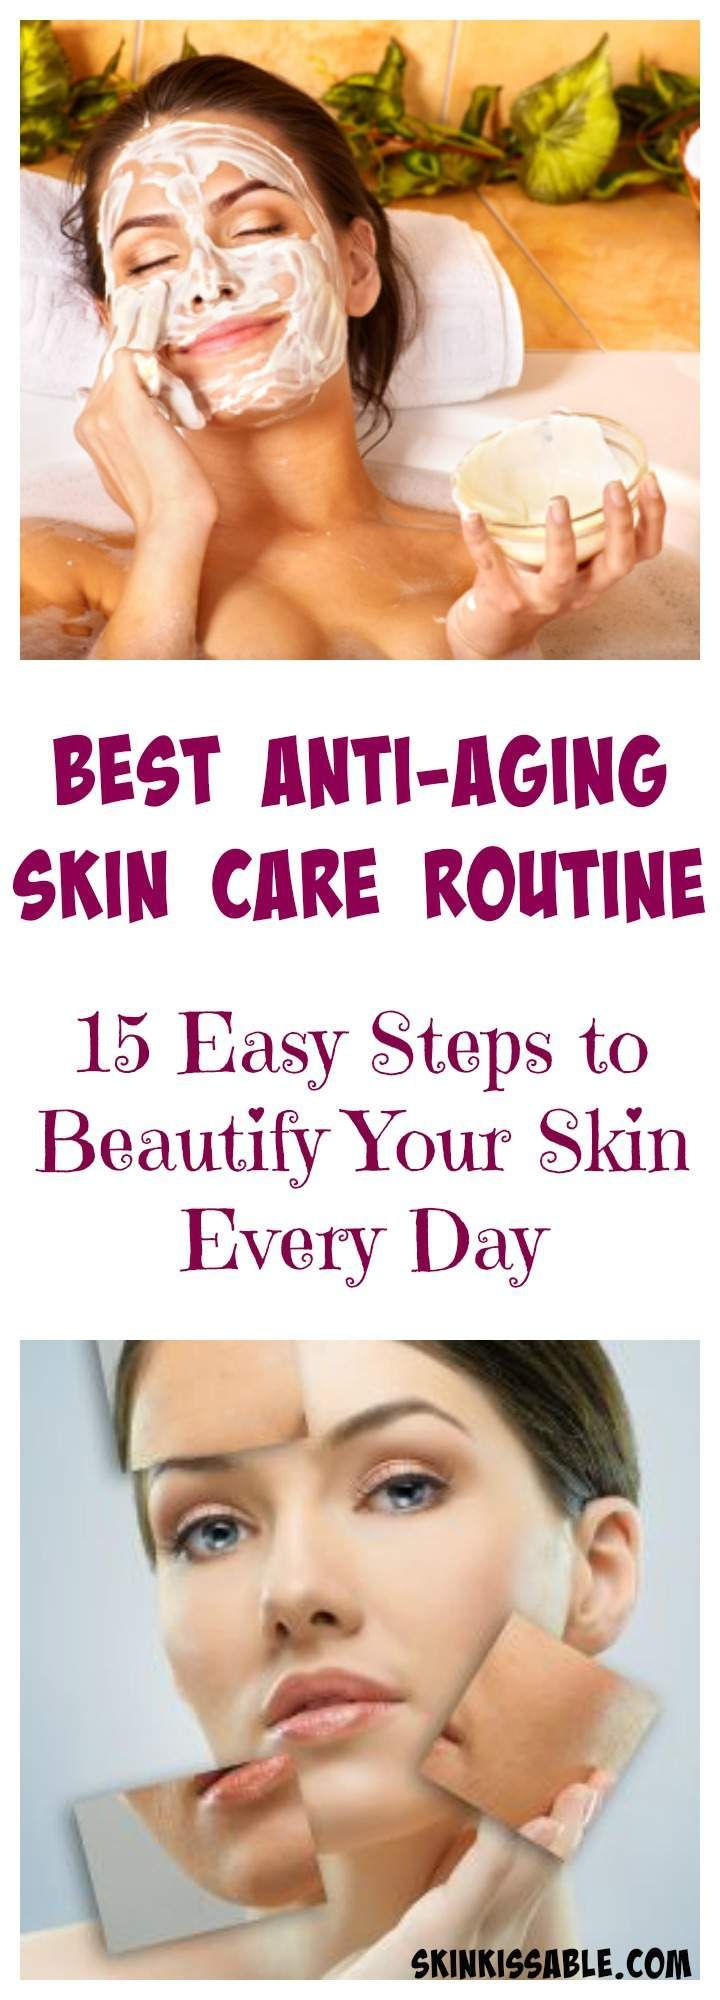 Best anti-aging skin care routine, tips & products.